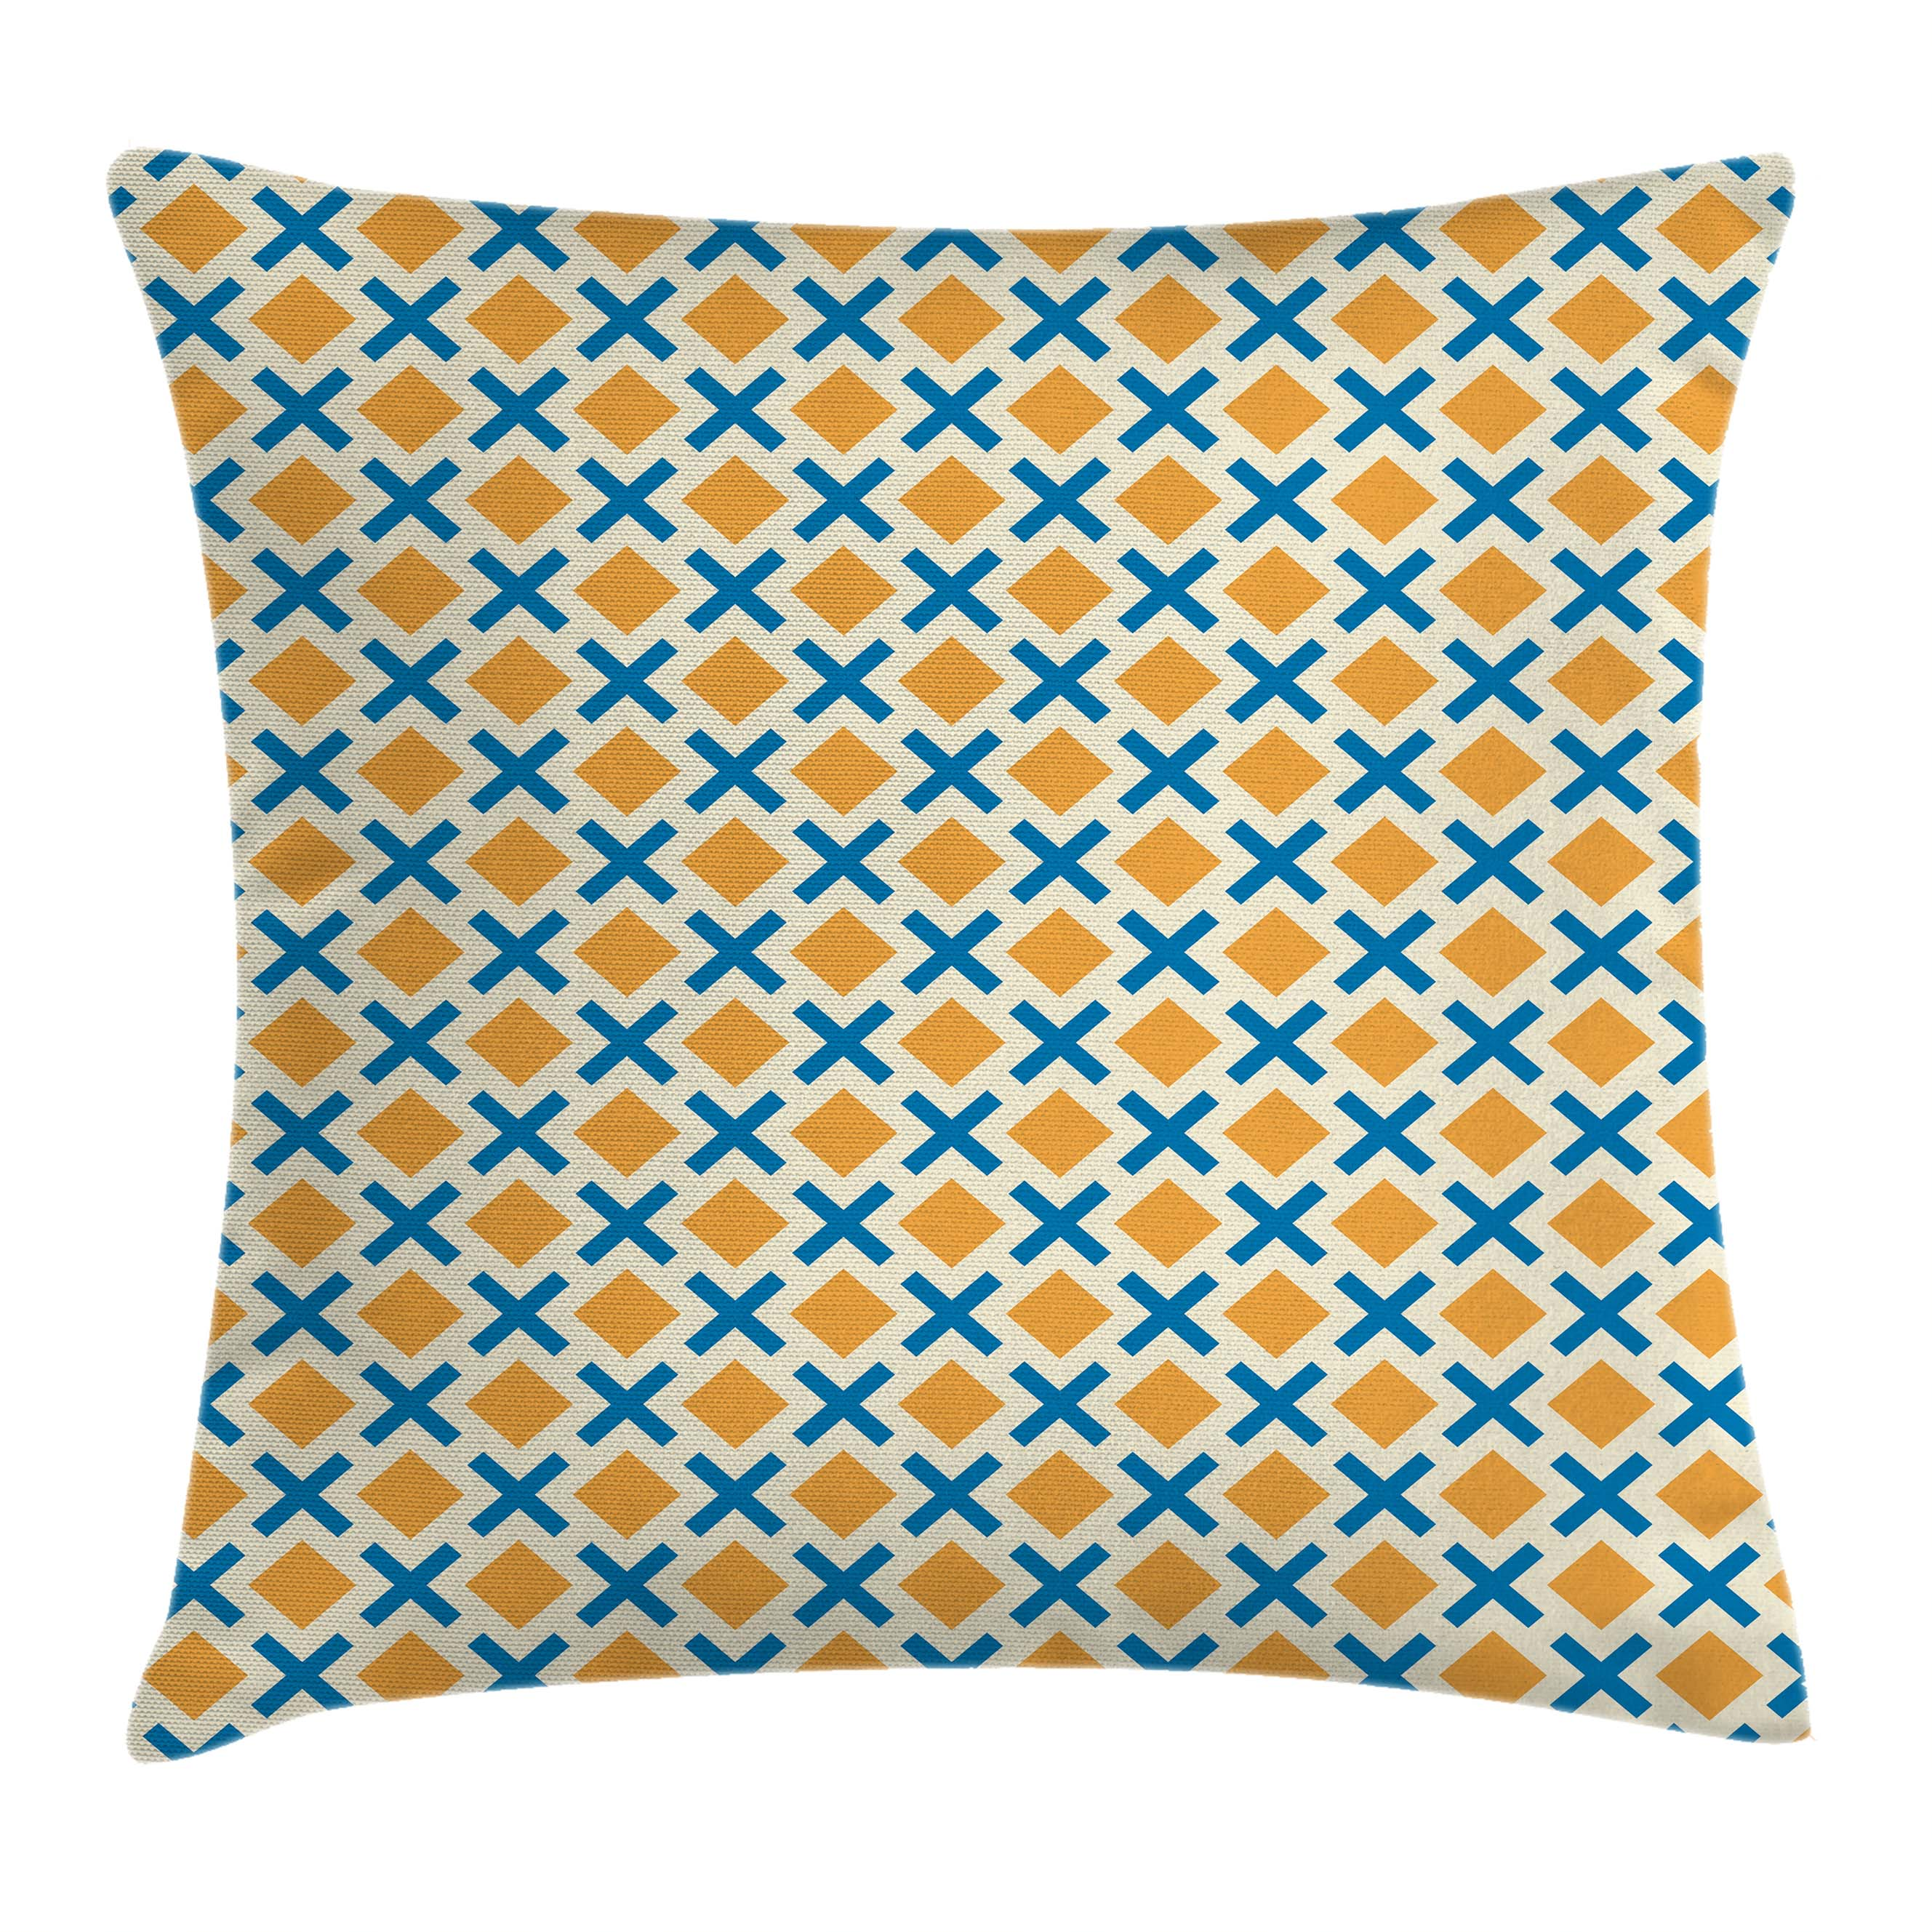 Kids Throw Pillow Cushion Cover, Checked Pattern with Dashed Lines and Squares Diagonal Geometrical Retro Tile, Decorative Square Accent Pillow Case, 16 X 16 Inches, Blue Marigold Cream, by Ambesonne